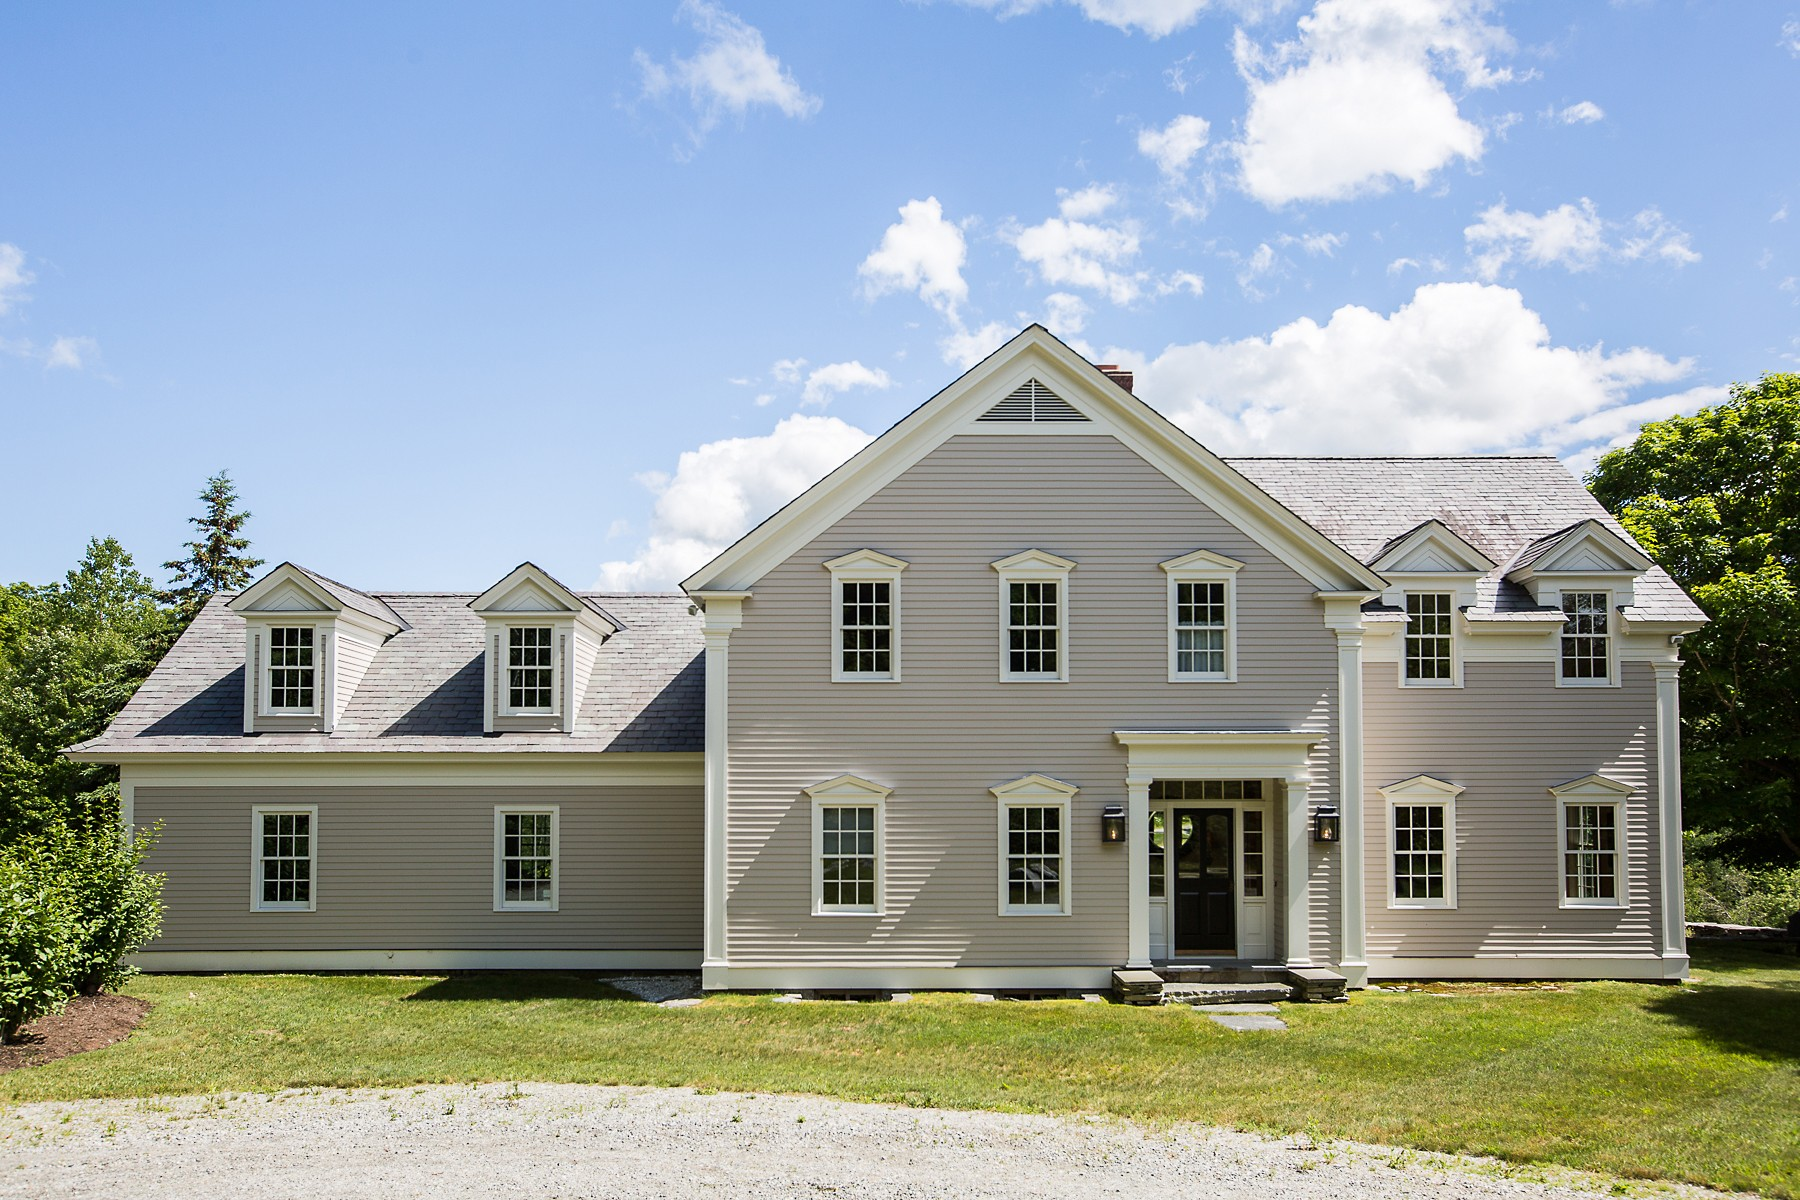 1426 Goodaleville Rd, South Londonderry, VT 05155